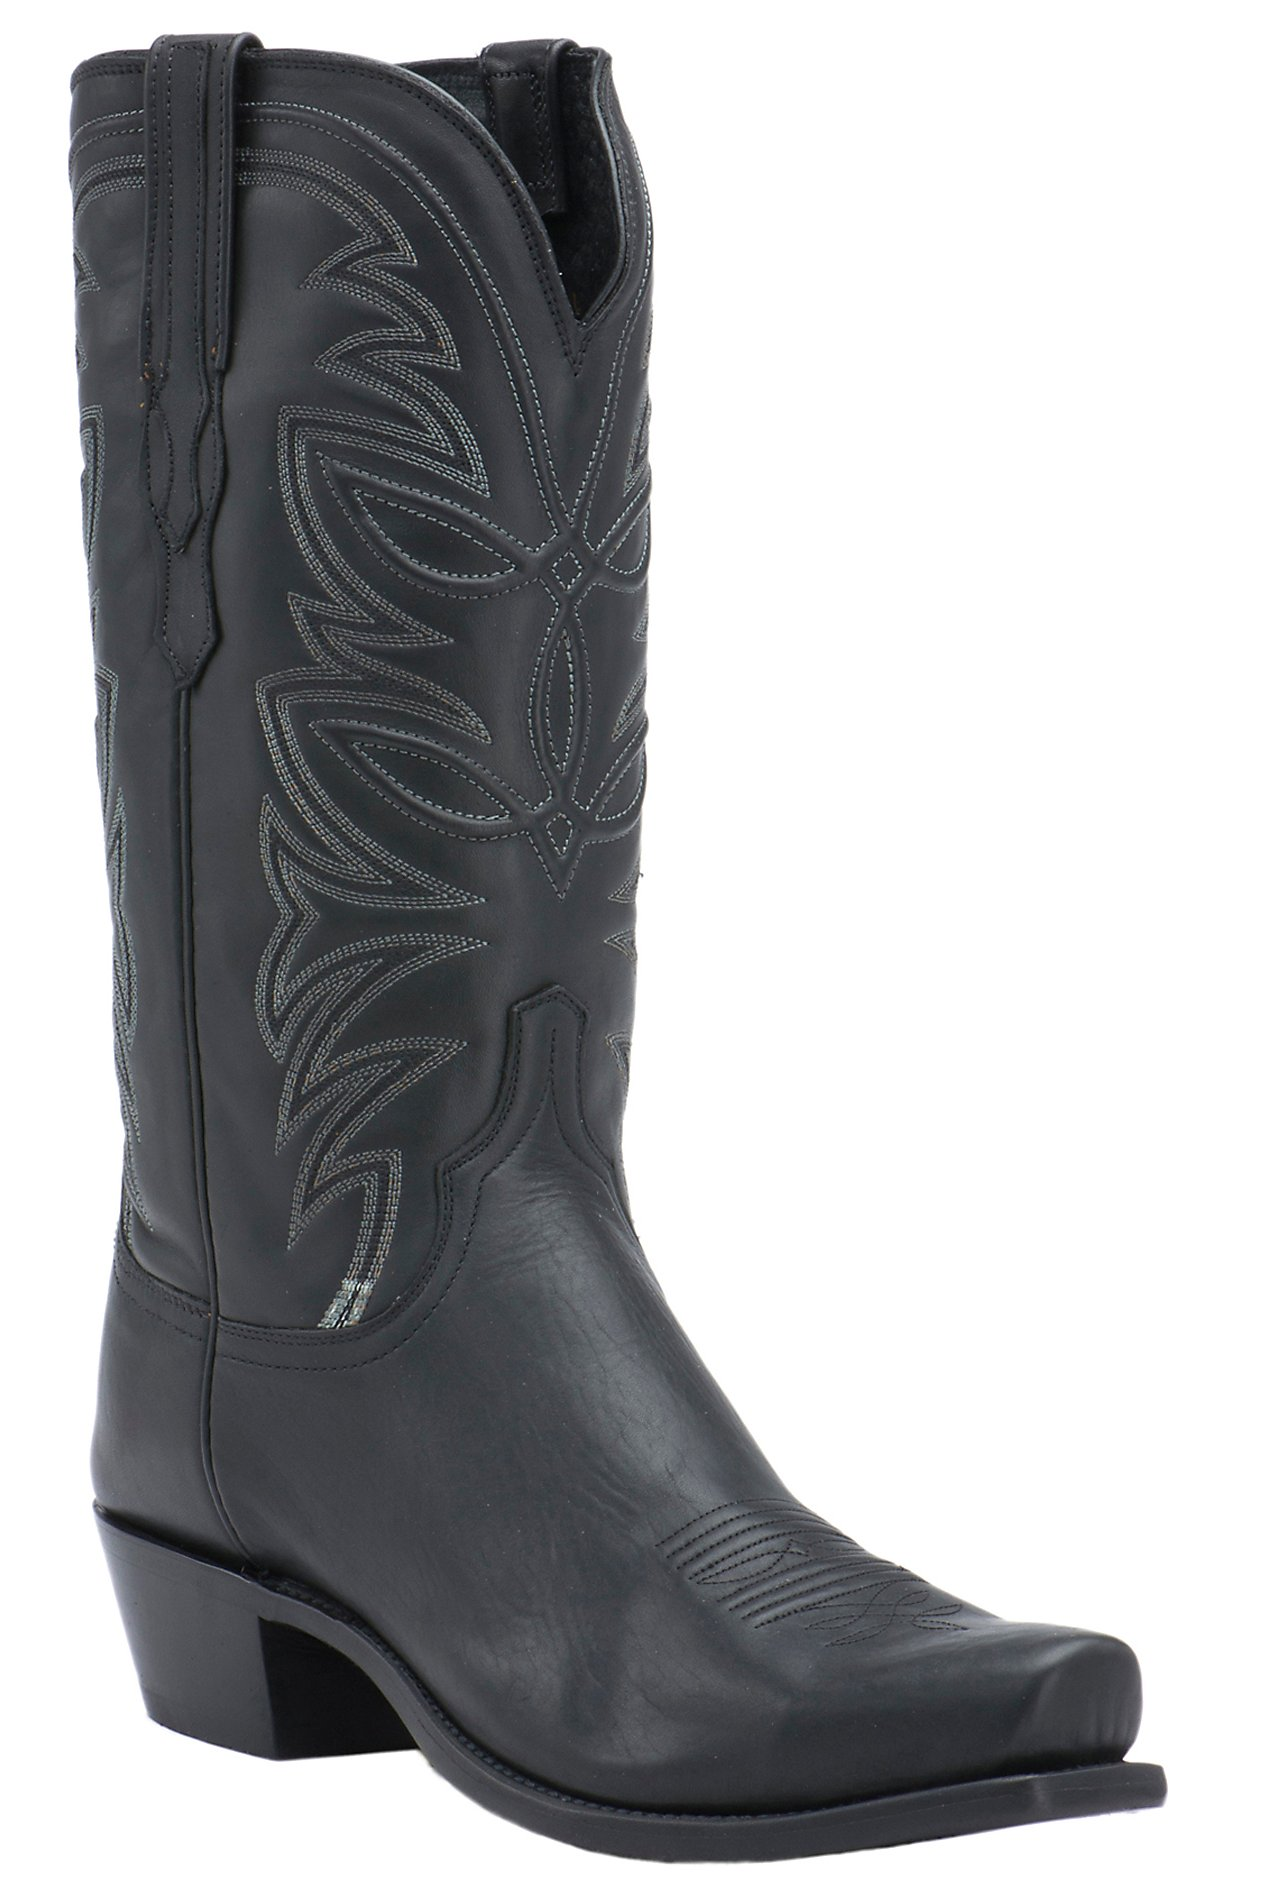 Lucchese 1883 Men s Black Ranch Hand Goat 7-Toe Narrow Punchy Toe Western  Boots c2abf038bf3